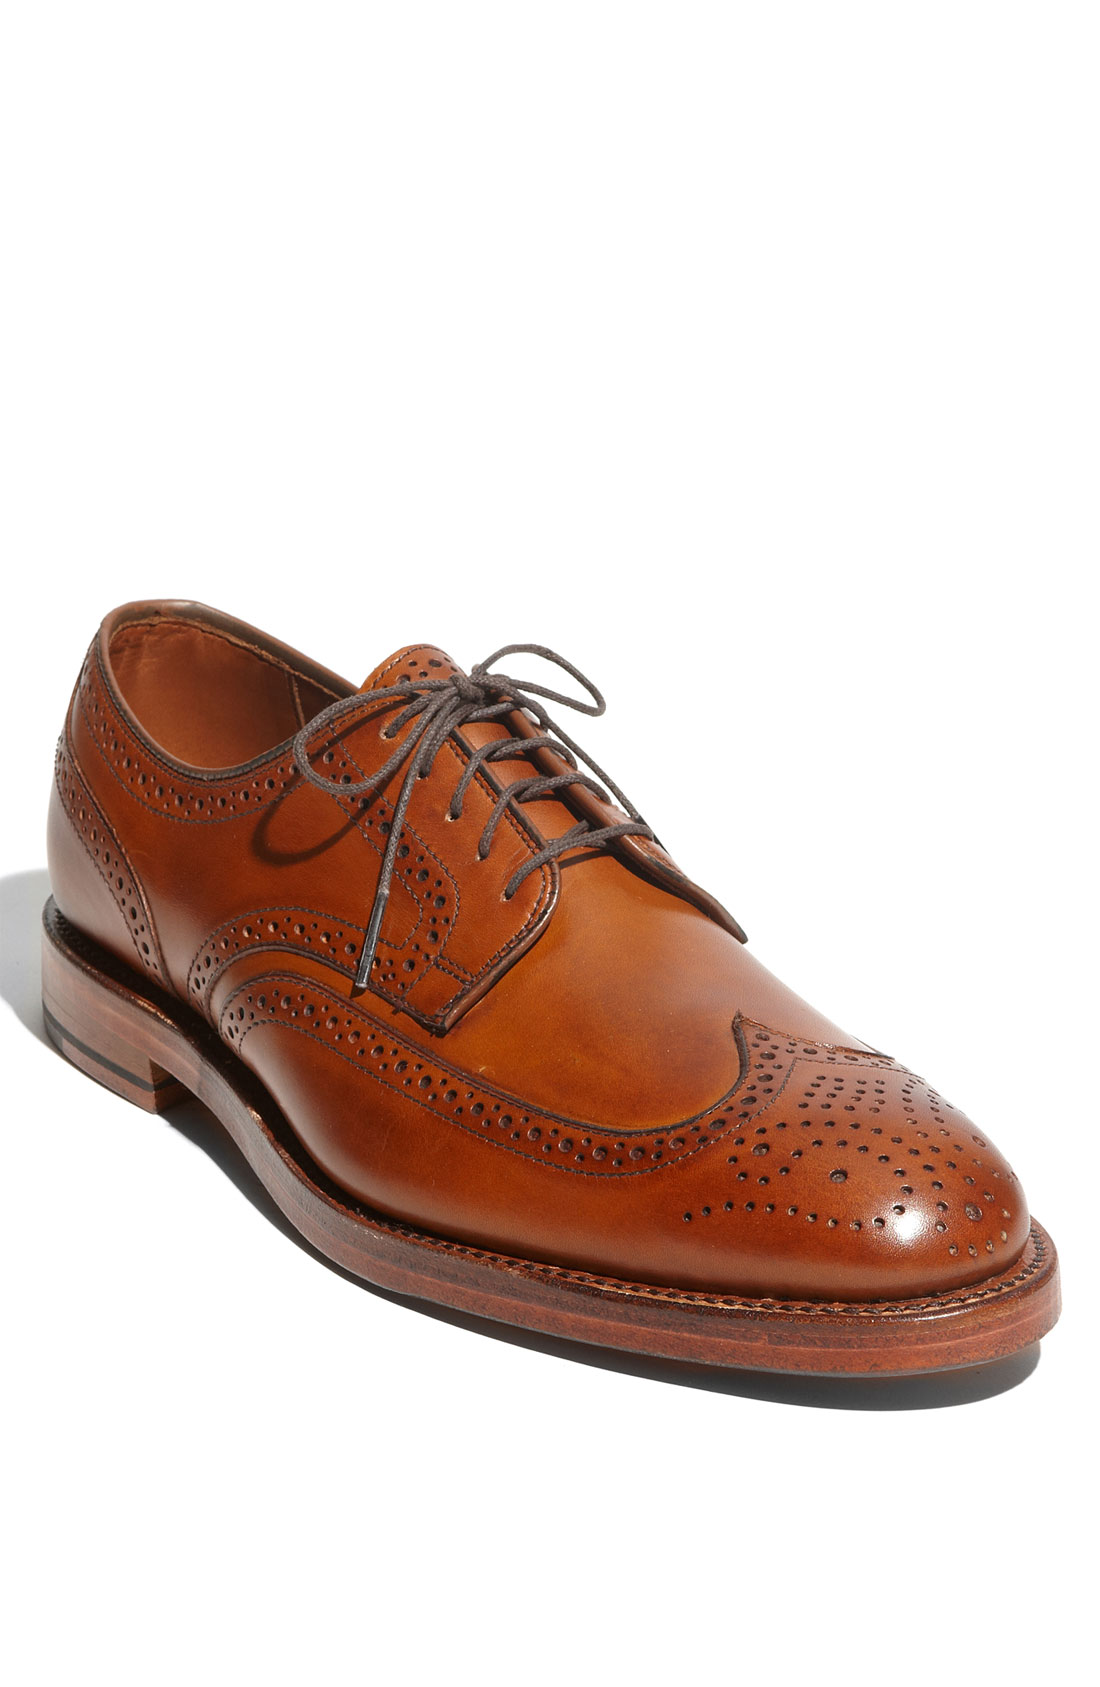 Jefferson - Wingtip Lace-up Oxford Men's Dress Shoes by Allen Edmonds. From the Independence Collection. Leather Sole. Eligible for Recrafting. Handcrafted in the .